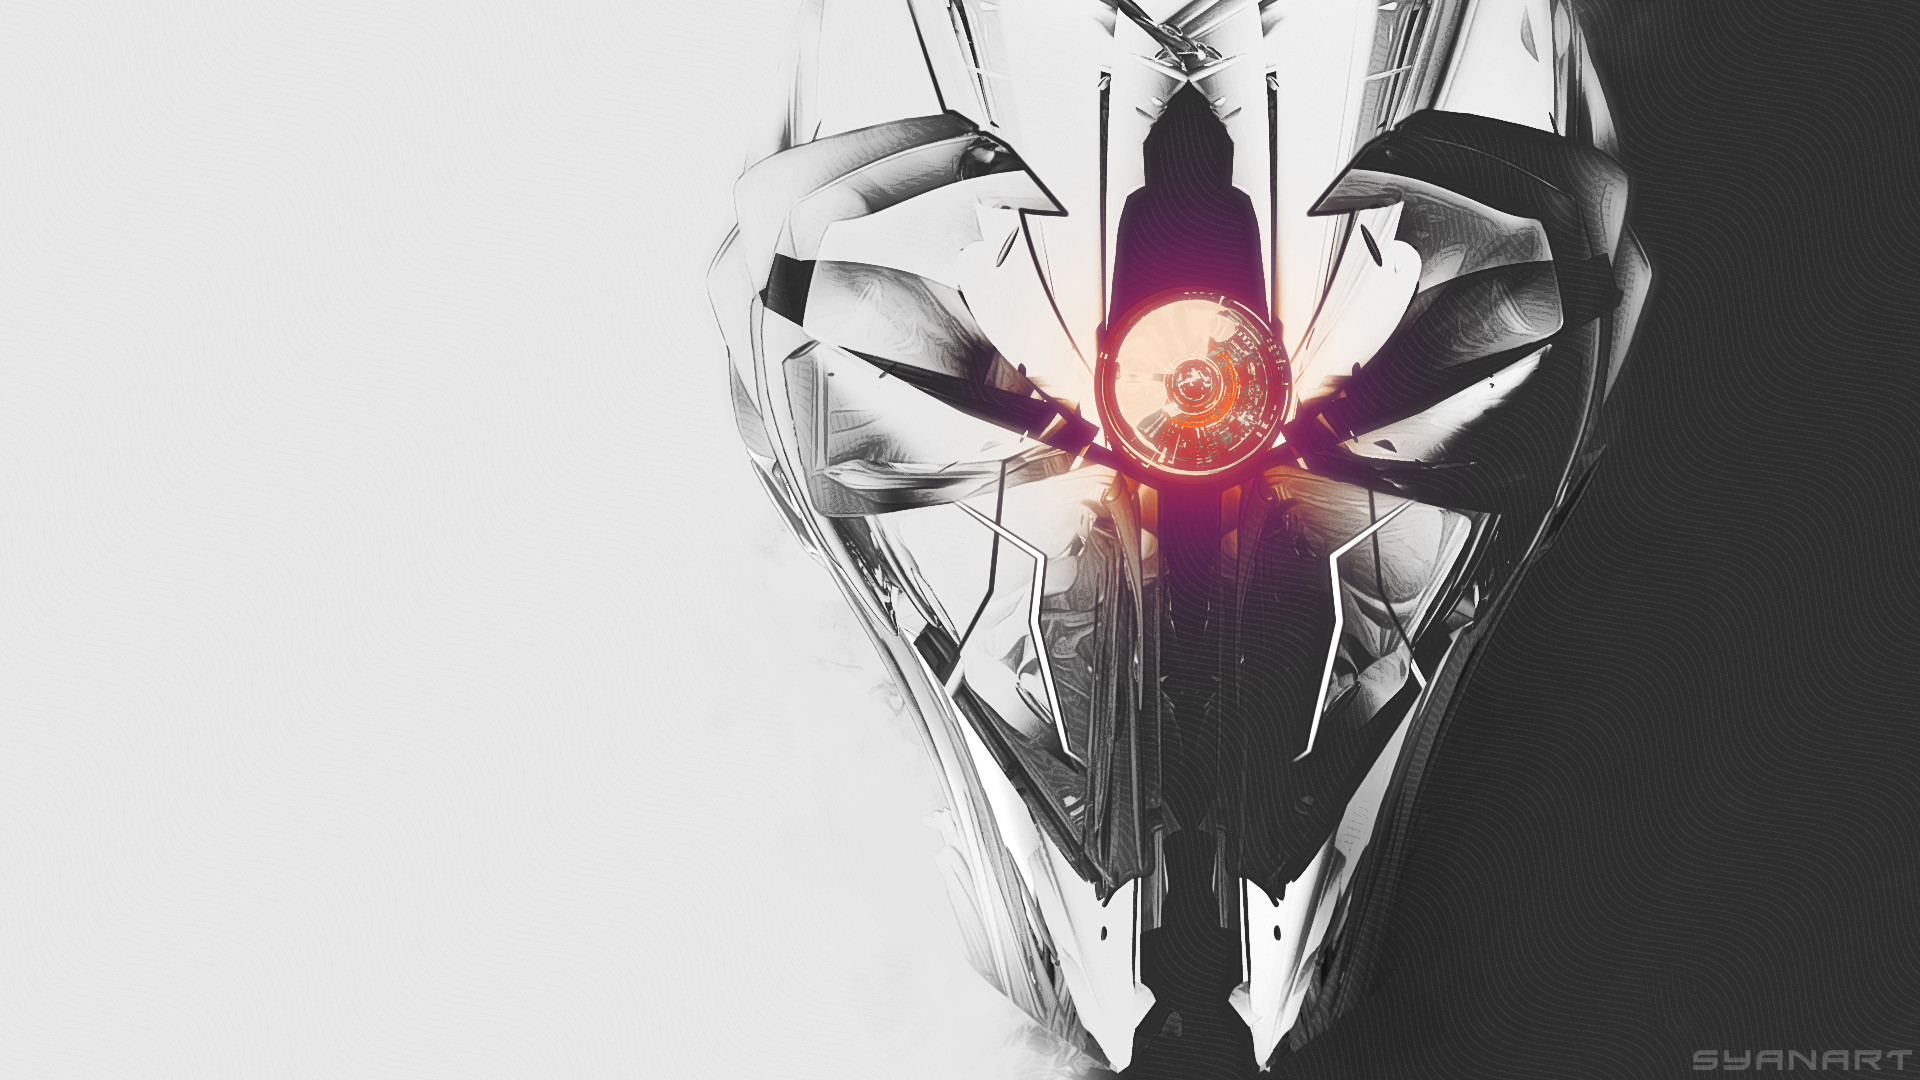 1920×1080 px. Metal gear solid gray fox Syanart special tribute, this  wallpaper …